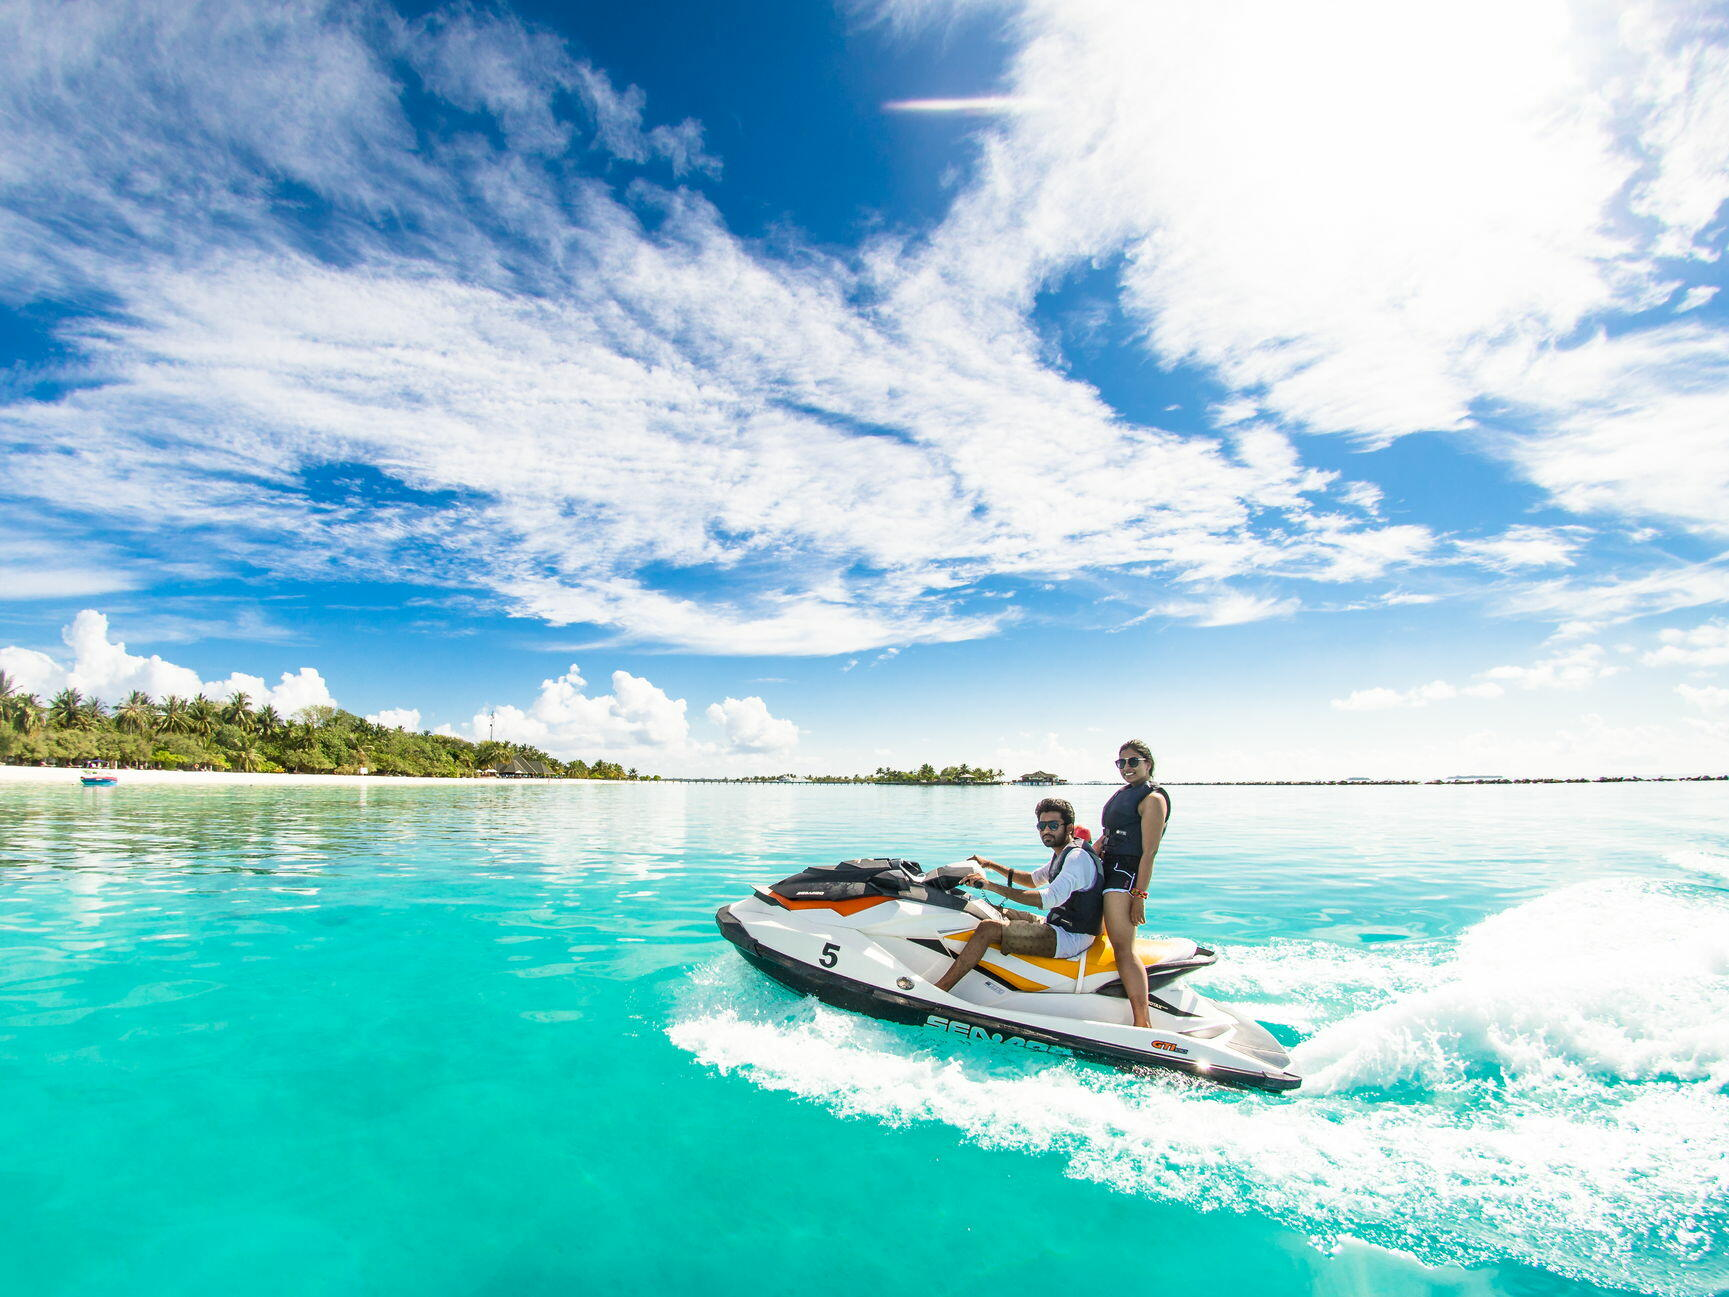 couple on jet ski in water